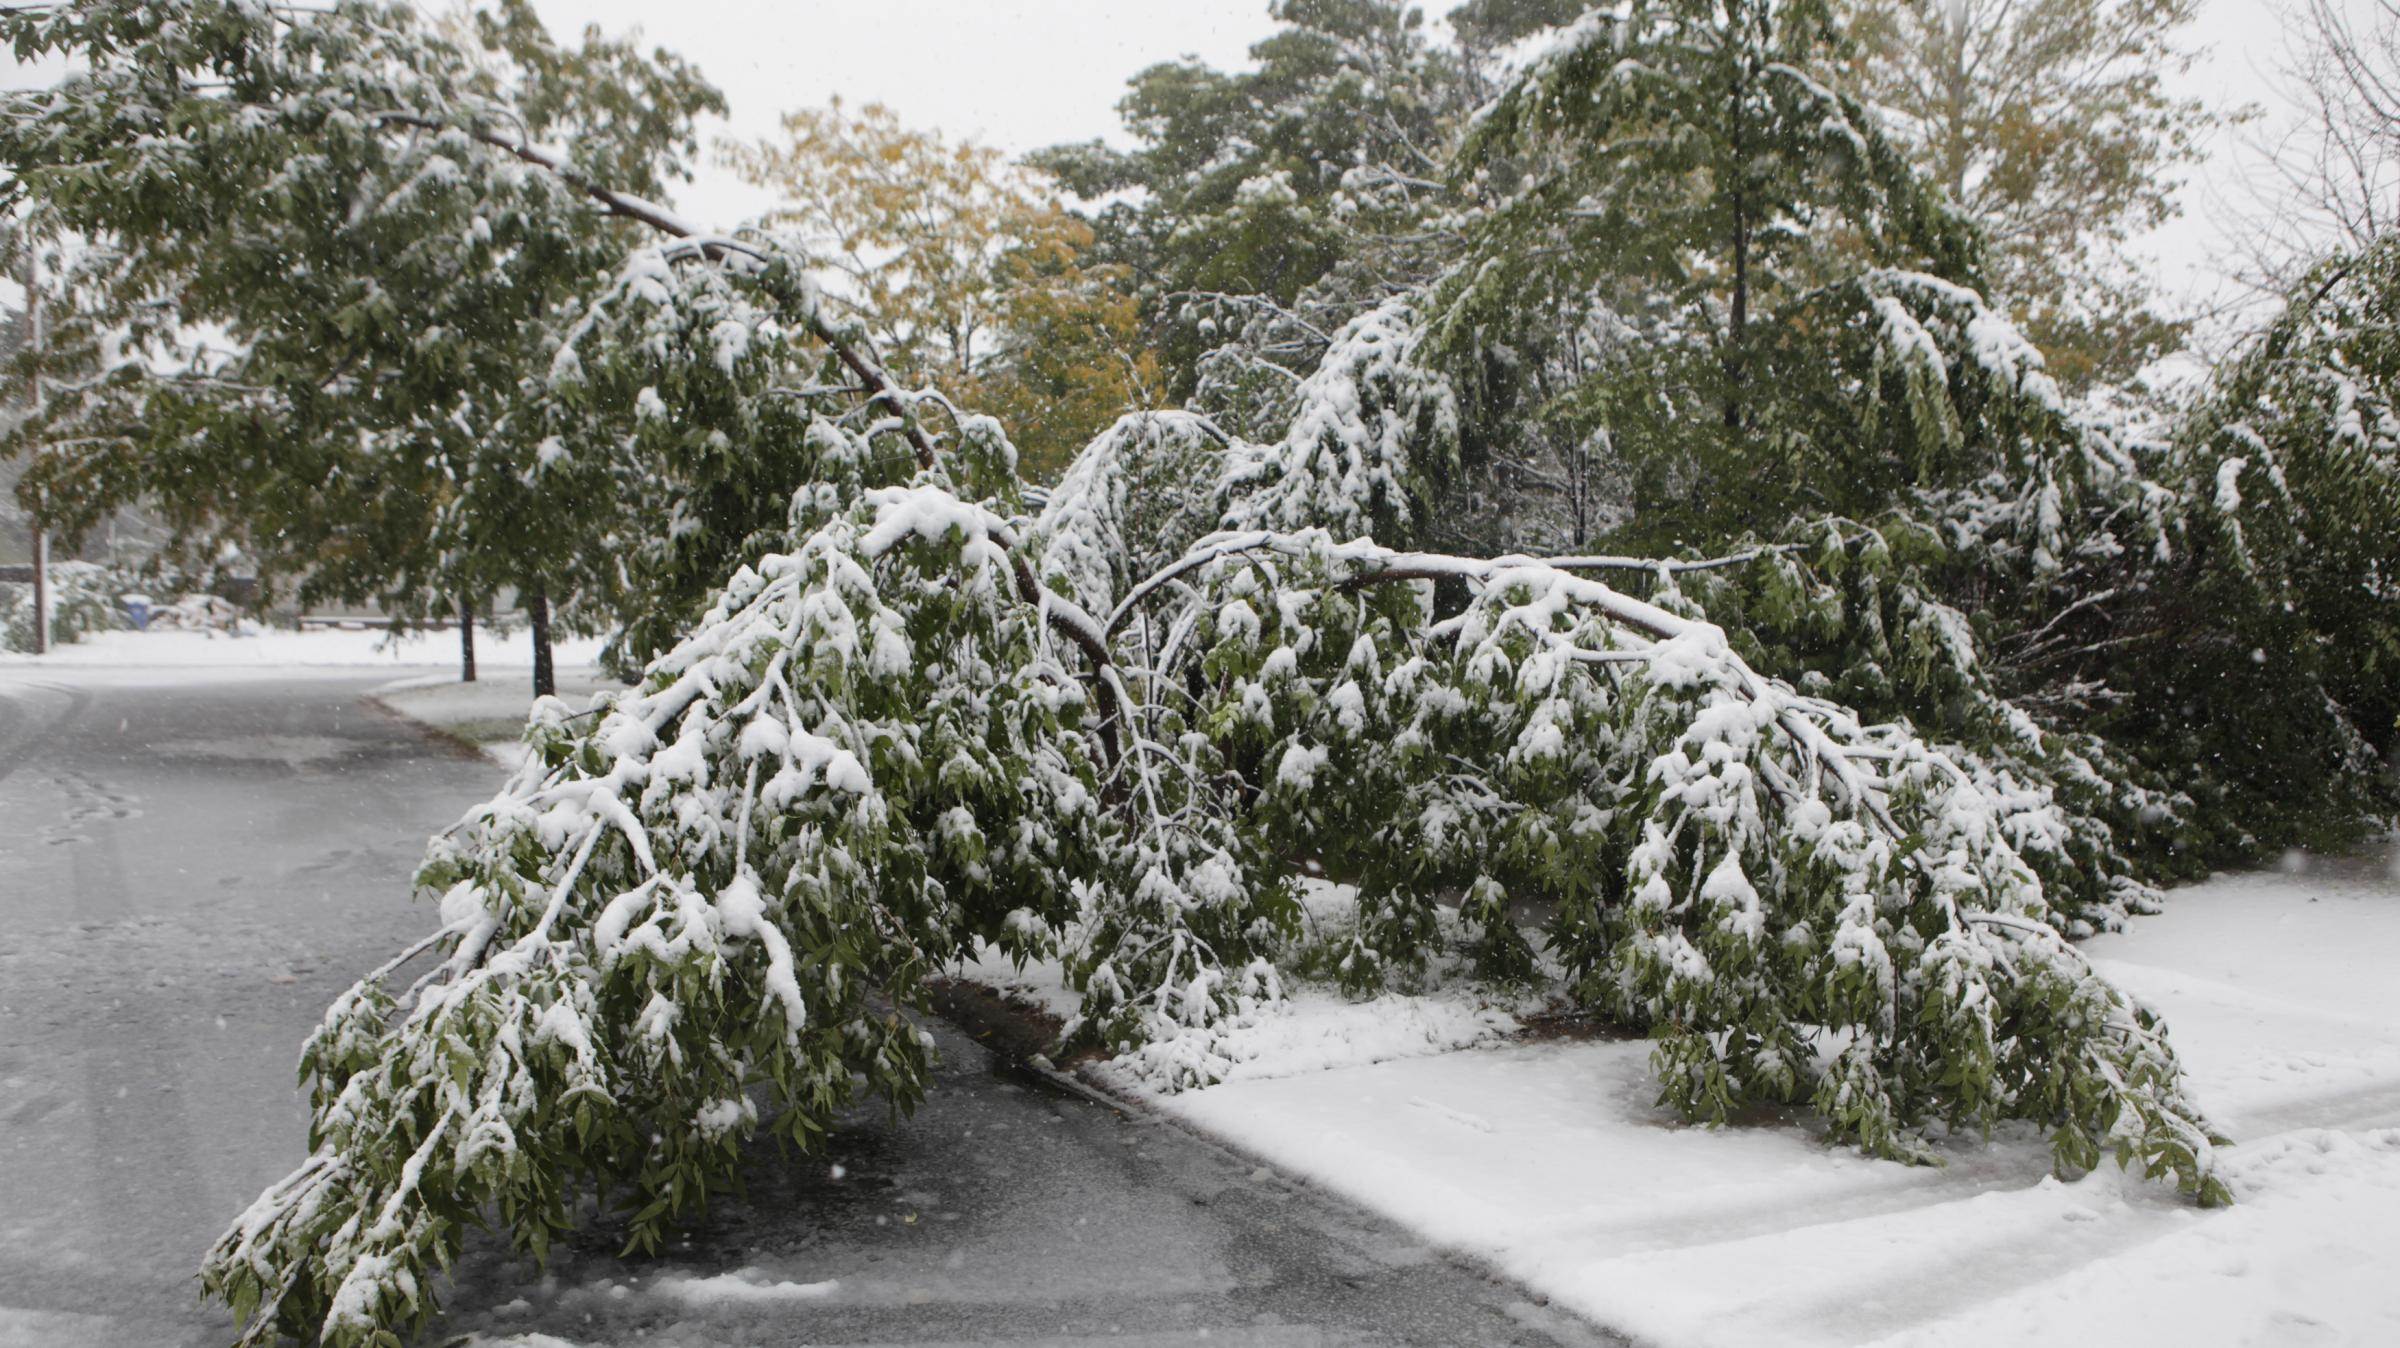 how to cut down large tree branches